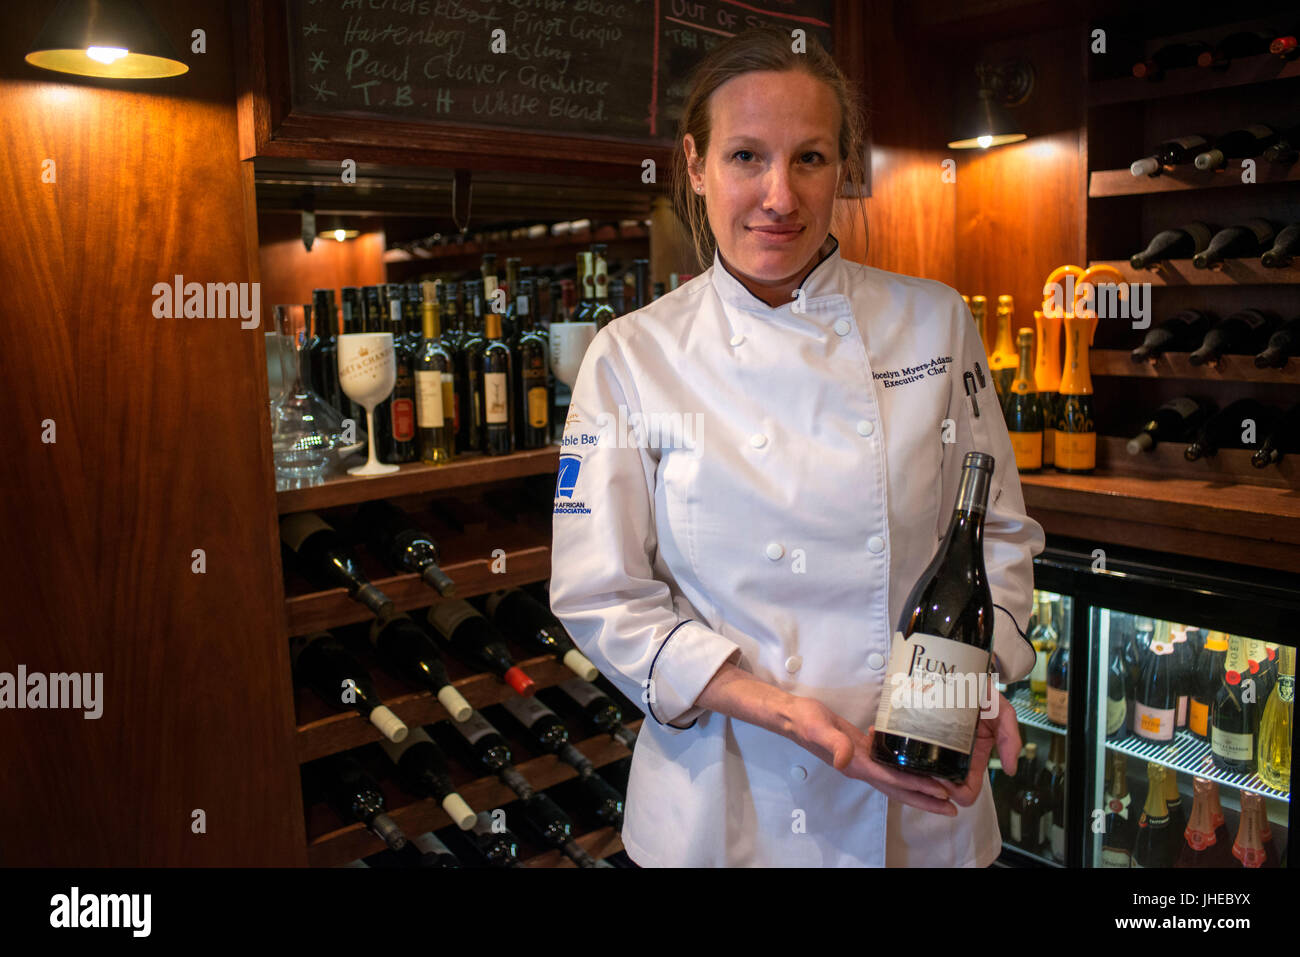 Jocelyn Myers-Adams Executive Chef at the Table Bay Hotel. Cellar of the Camissa Brasserie Restaurant, Victoria - Stock Image